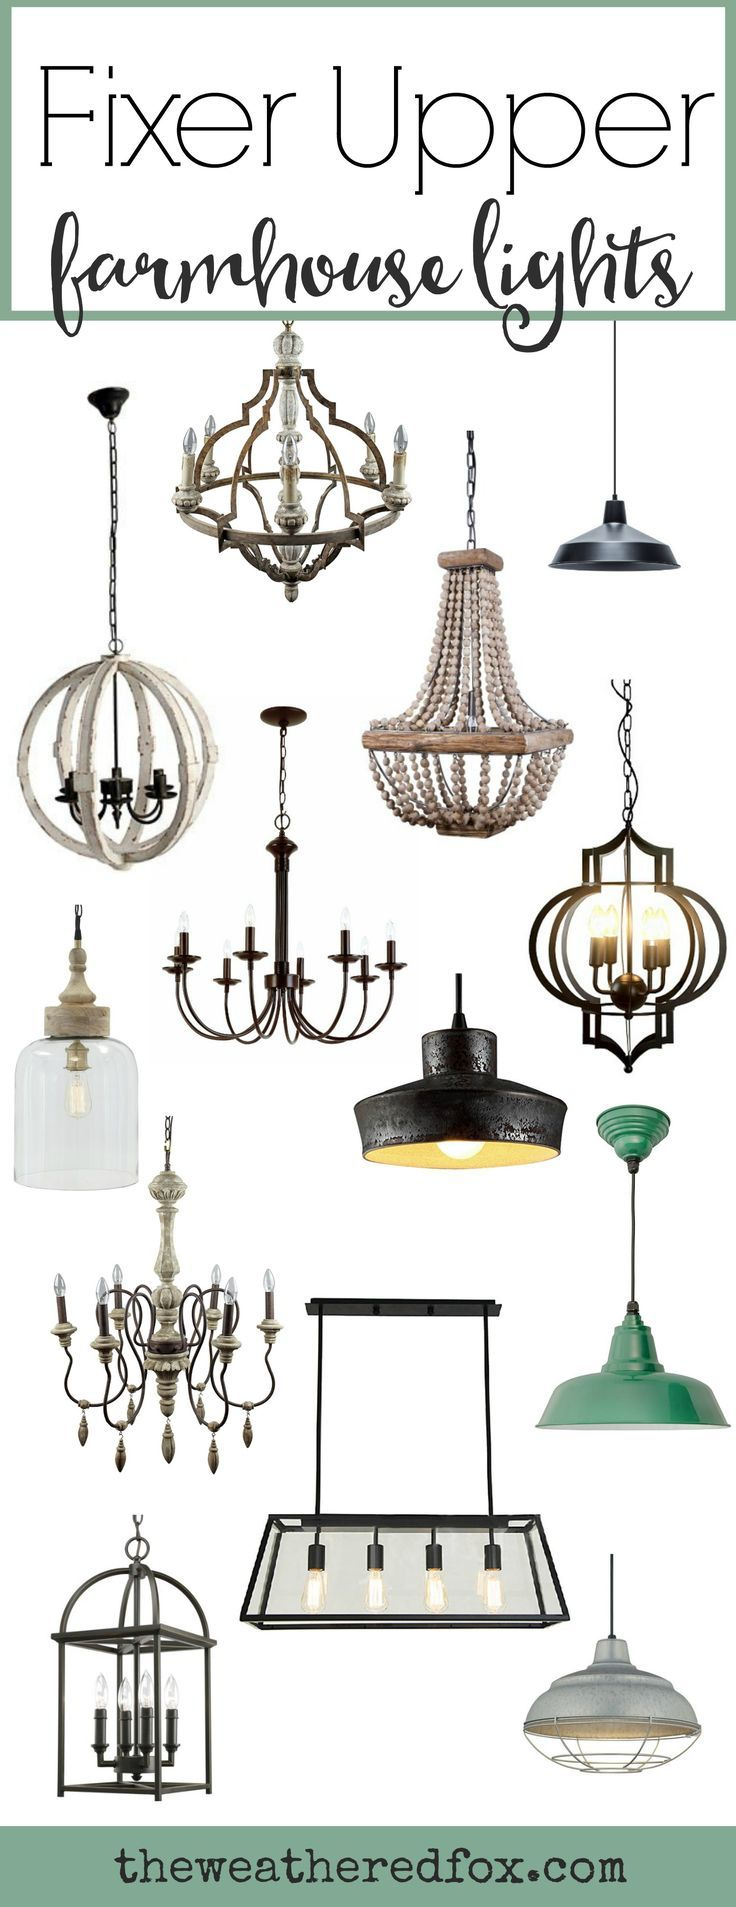 Fixer Upper Lighting for Your Home is part of Home Accents DIY Joanna Gaines - Fixer Upper Lighting ideas for your home  Lights inspired by HGTV's Fixer Upper  A round up of Joanna Gaines farmhouse style lights all in one place!